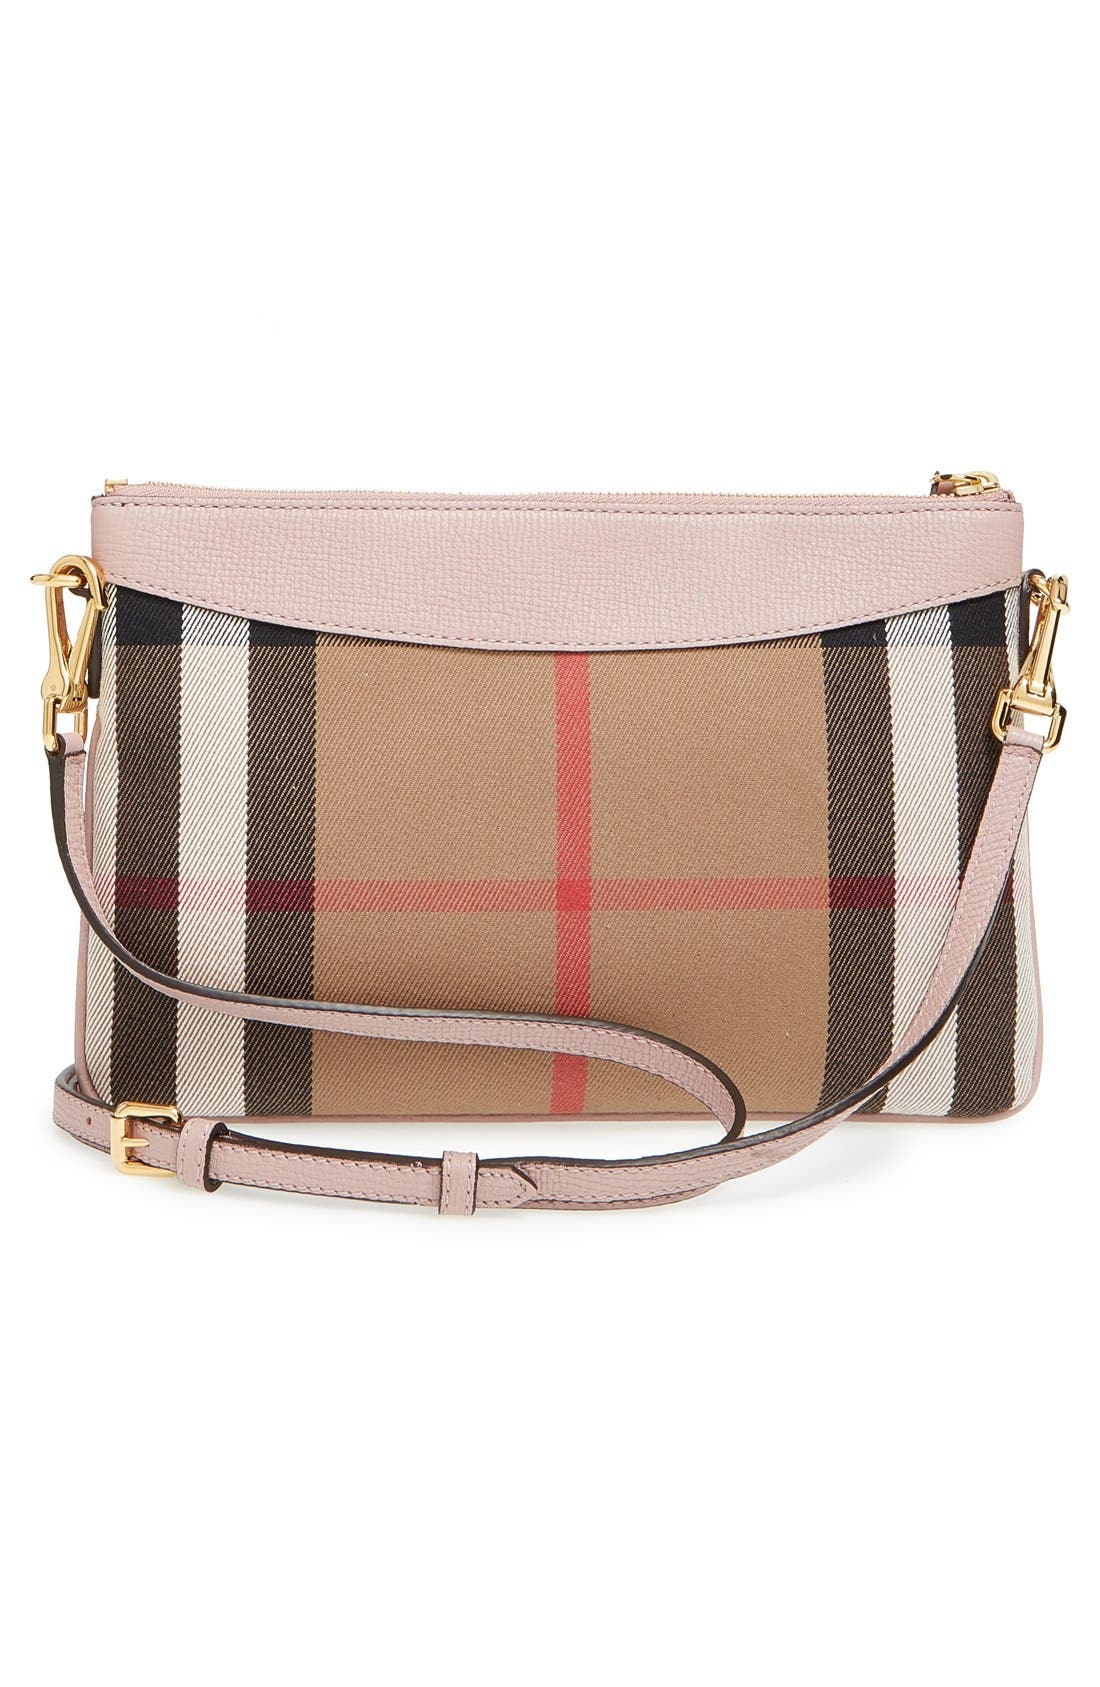 'Peyton - House Check' Crossbody Bag,                             Alternate thumbnail 3, color,                             500